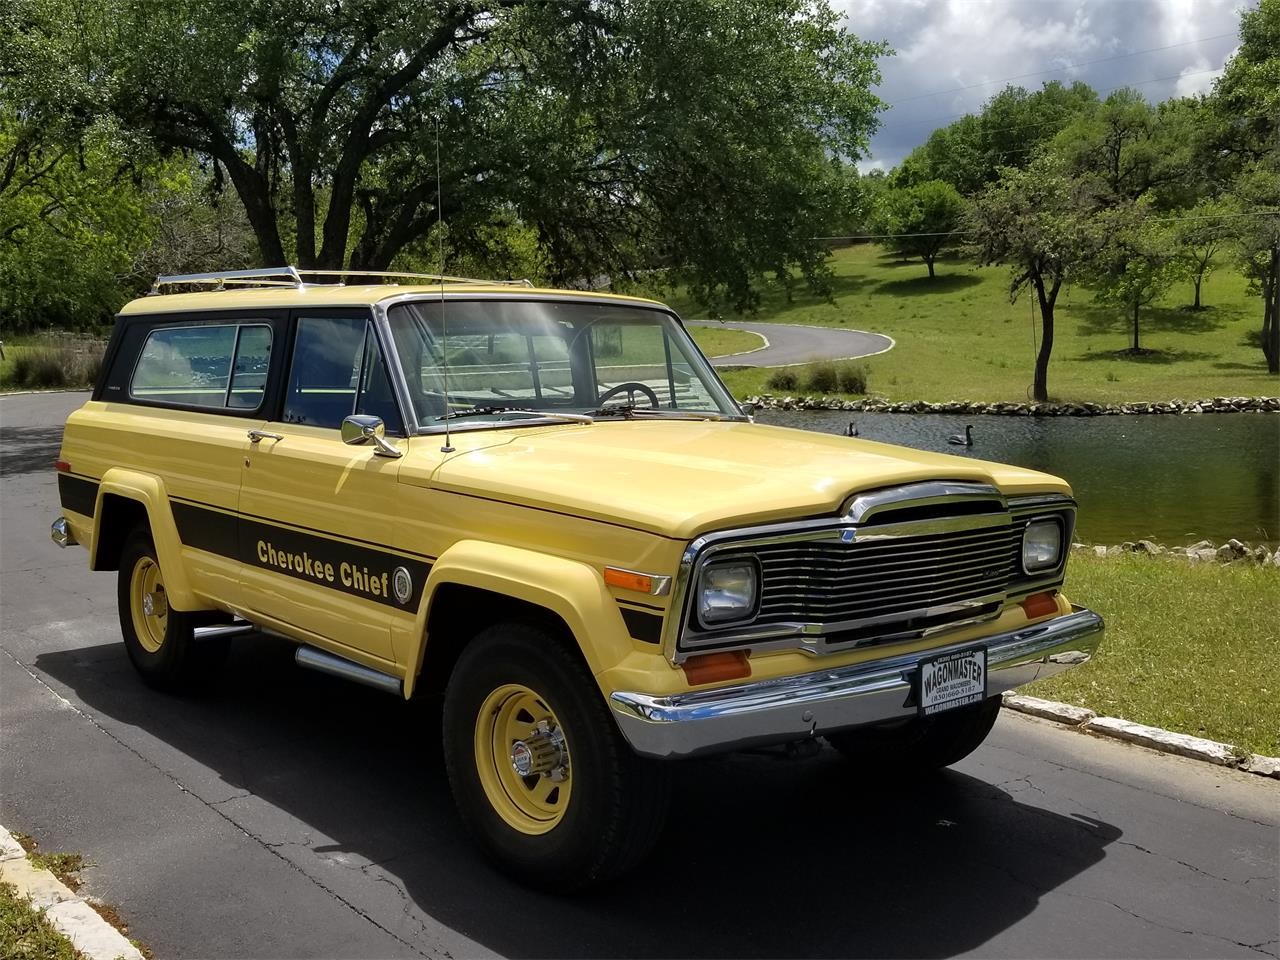 1979 Jeep Cherokee Chief for sale in Kerrville, TX – photo 24